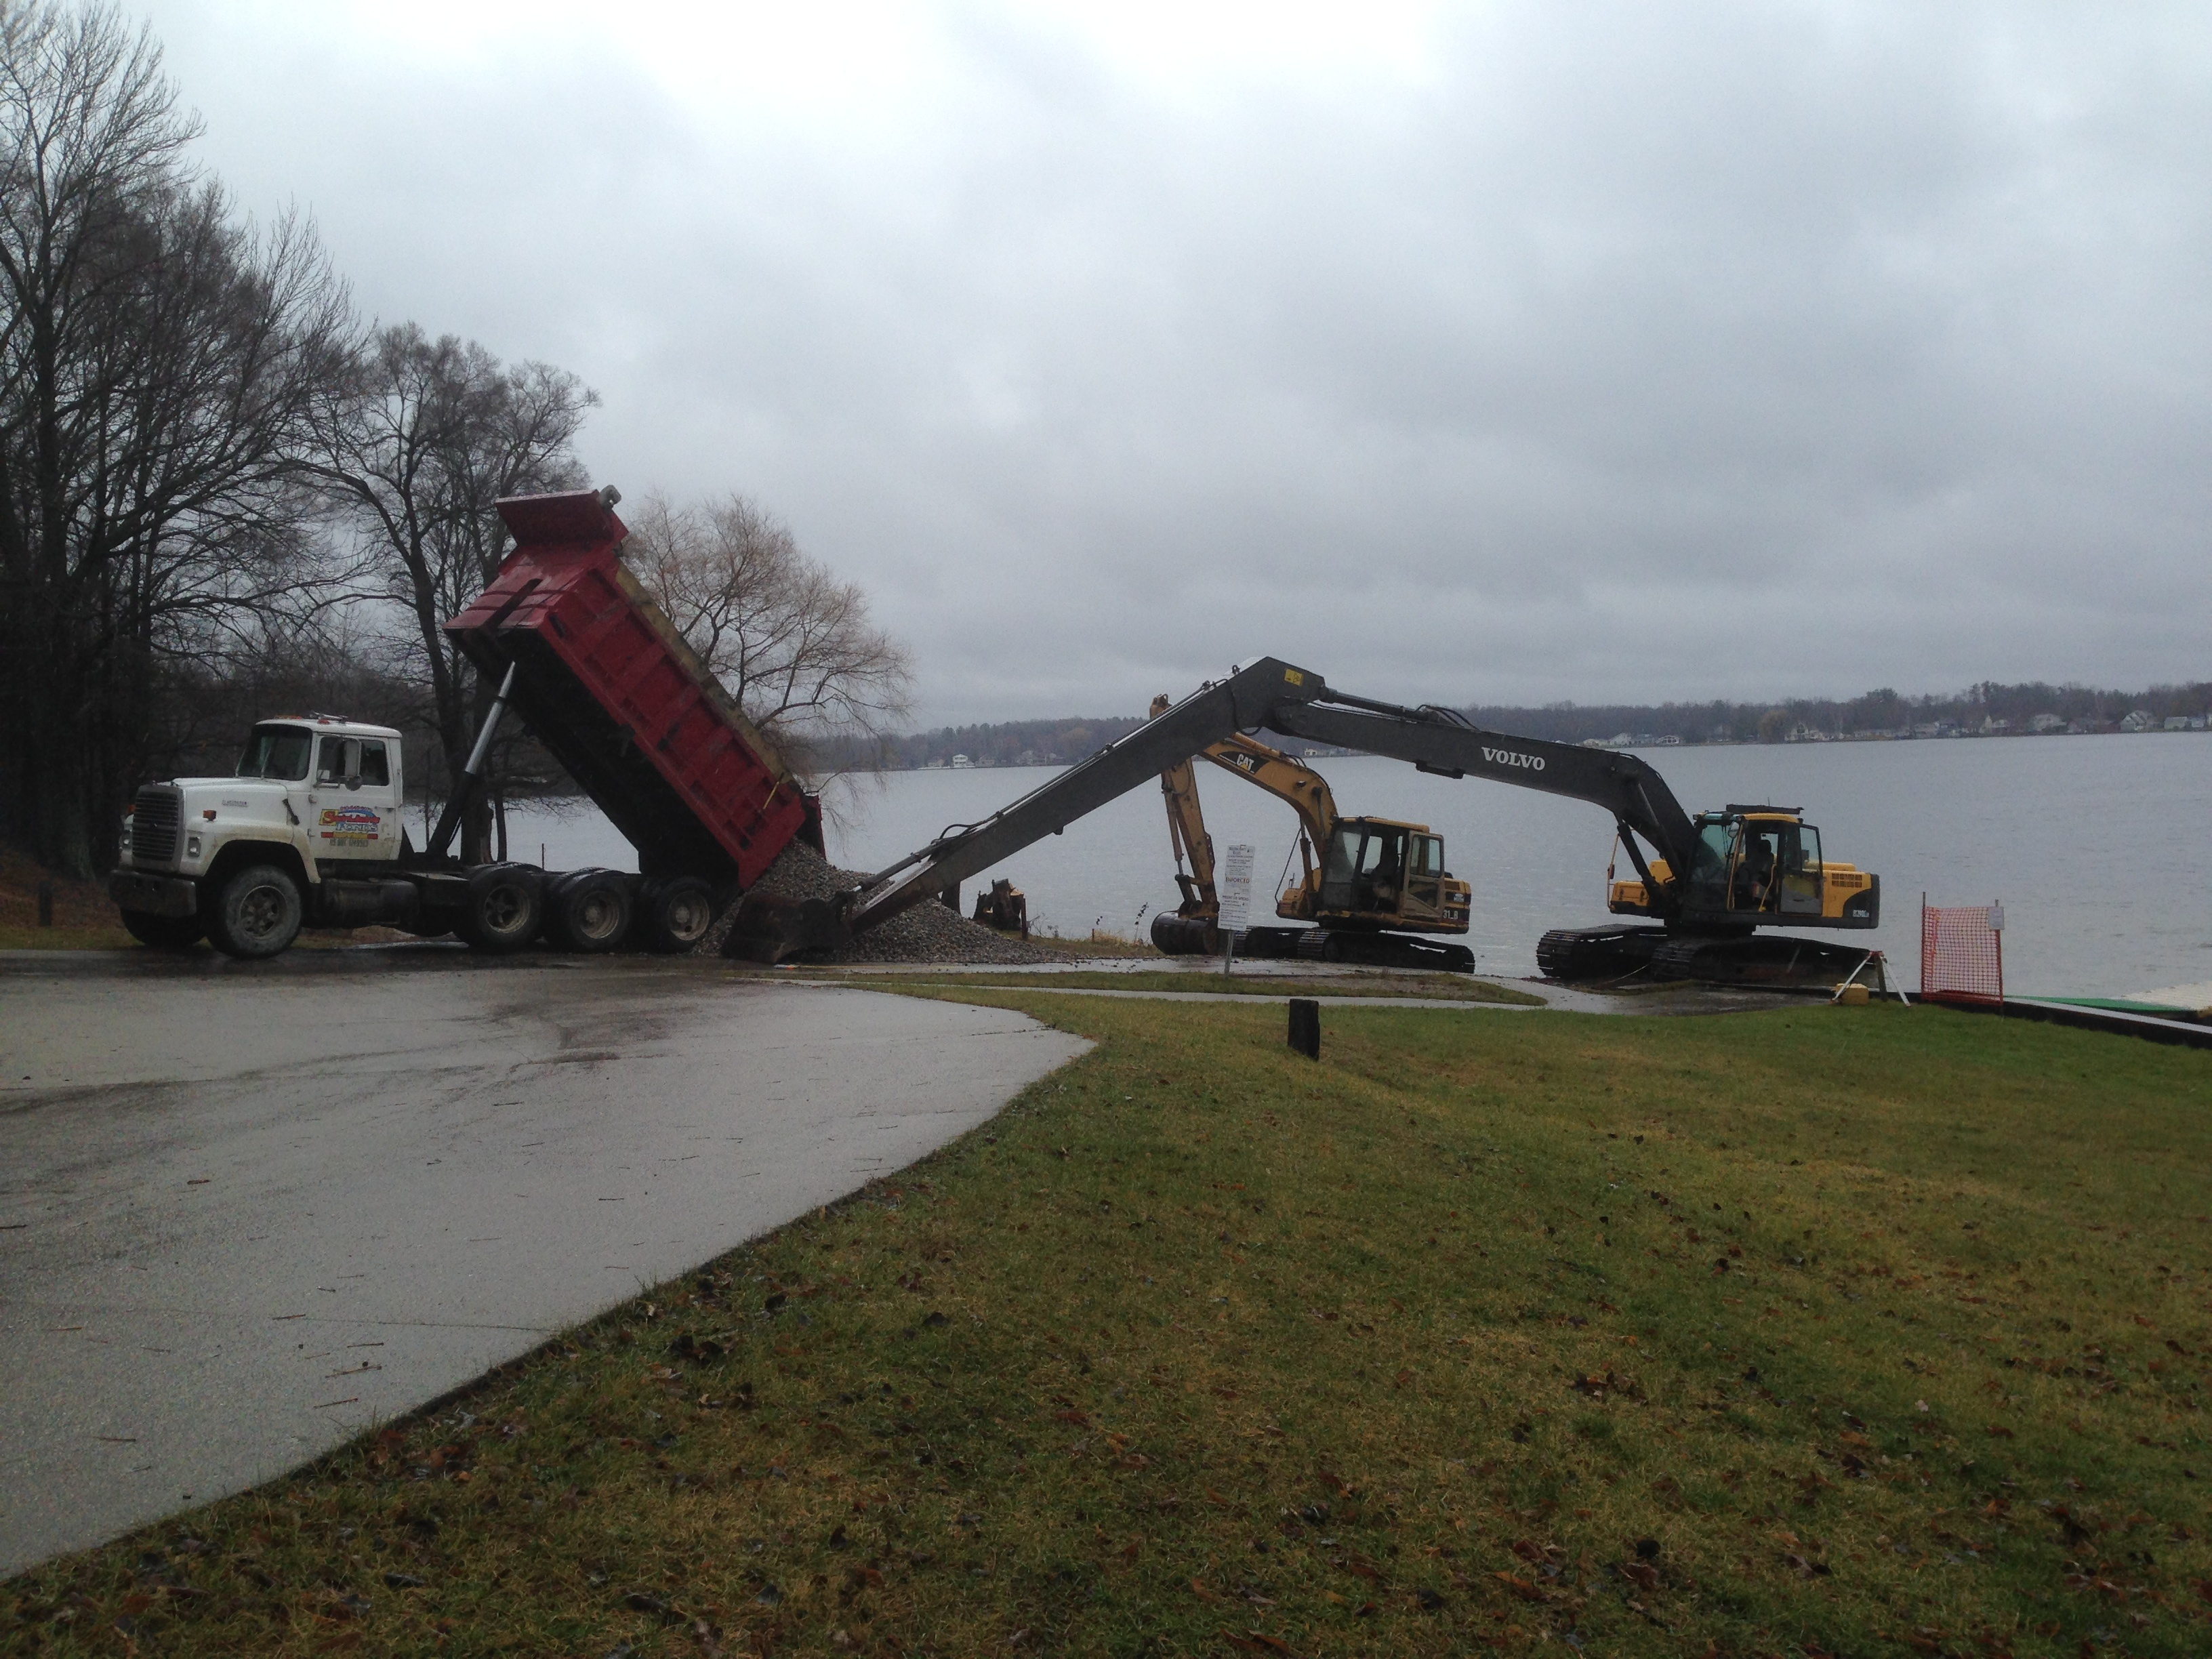 Boat_launch_installation_Michigan_Weidman_Michigan_132.jpg